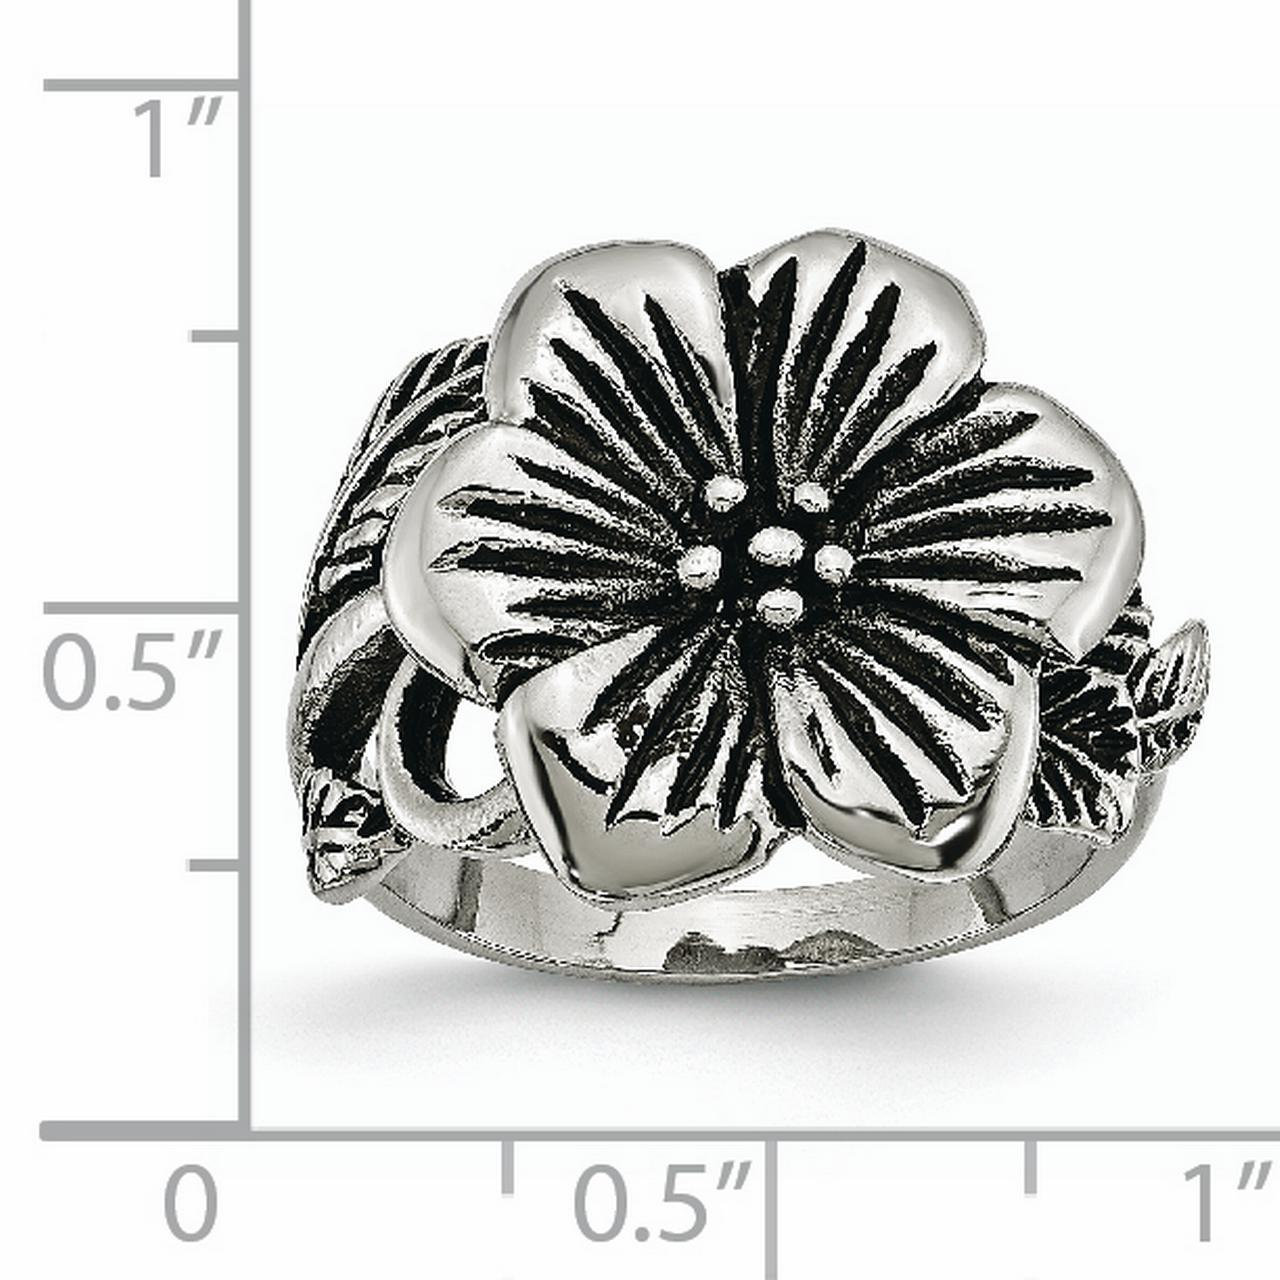 Stainless Steel Antique Finish Flower Band Ring Size 6.00 Flowers/leaf Fashion Jewelry Gifts For Women For Her - image 5 de 6